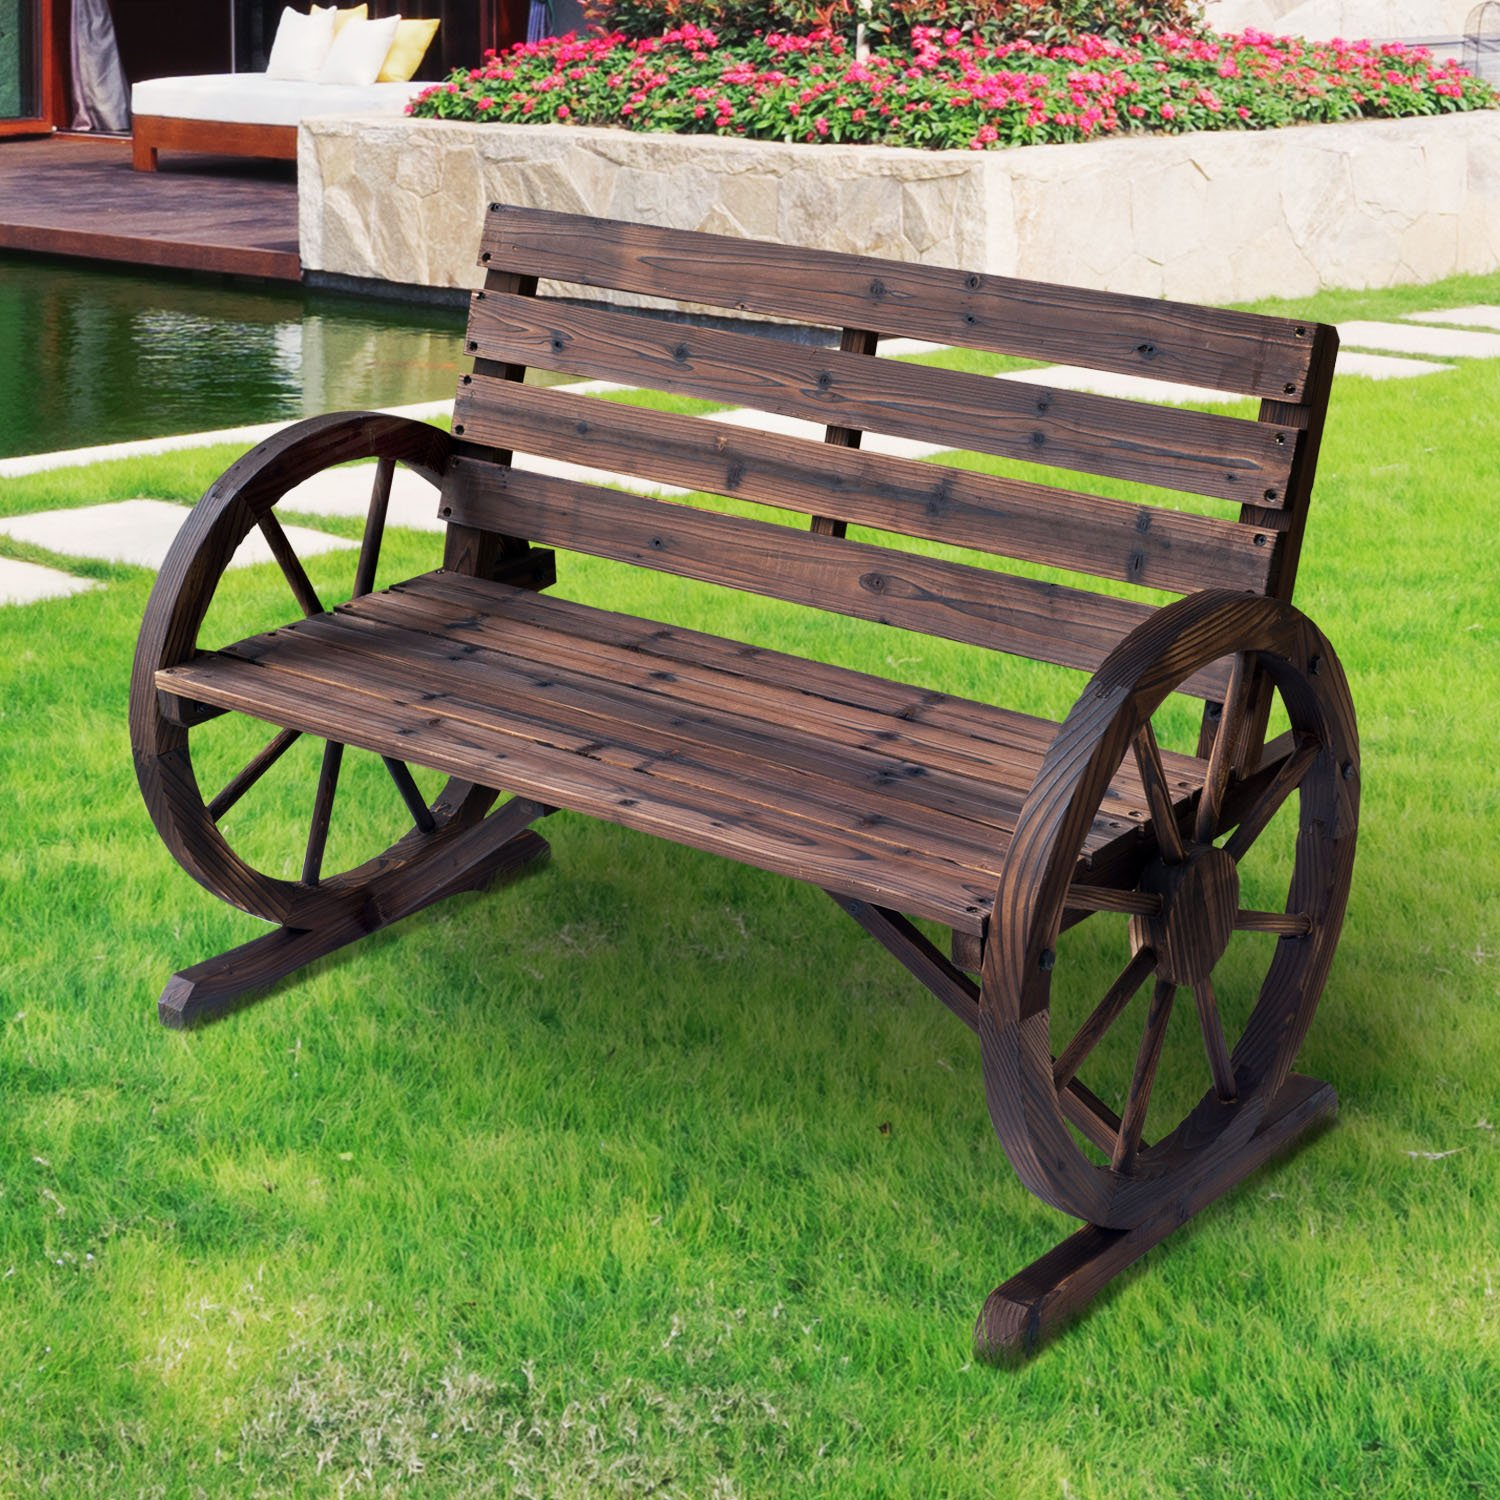 bench headboard vintage wheel wagon